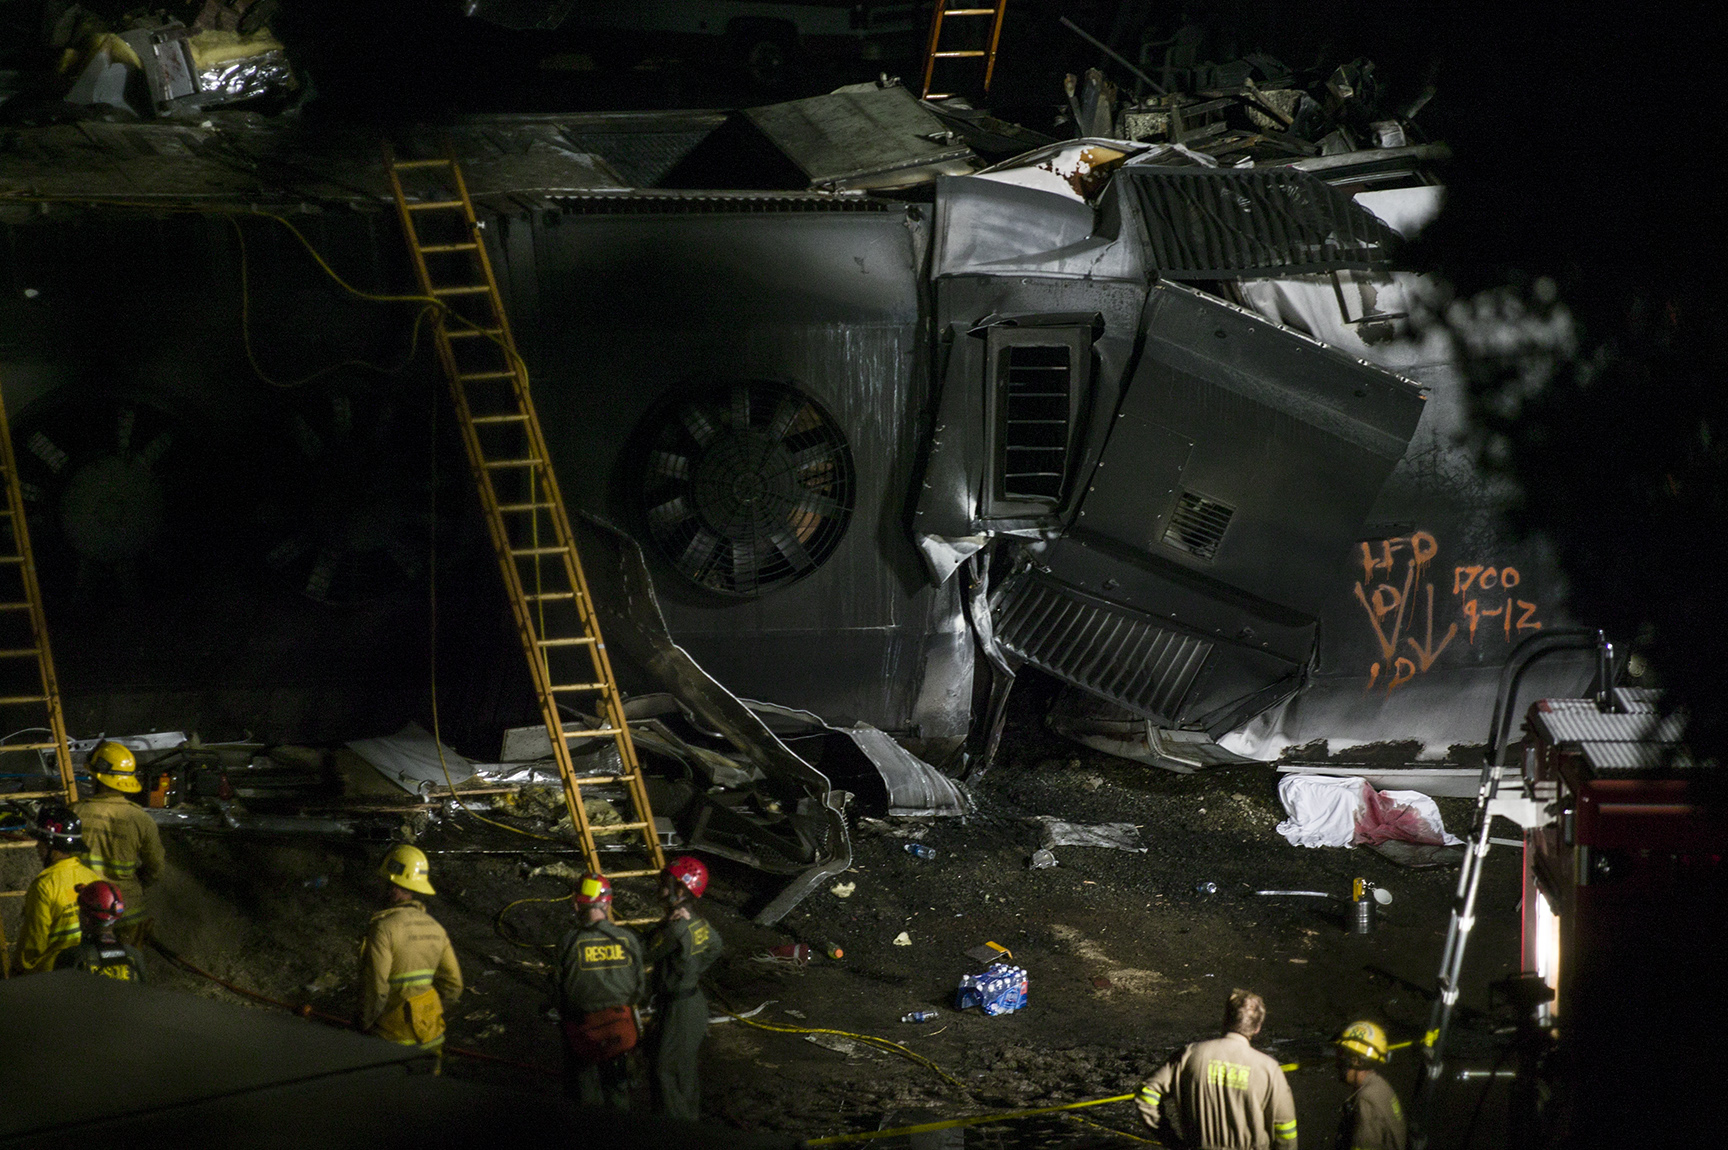 Emergency workers search for survivors at the site of a deadly train collision between a Union Pacific freight train and a Metrolink commuter train.